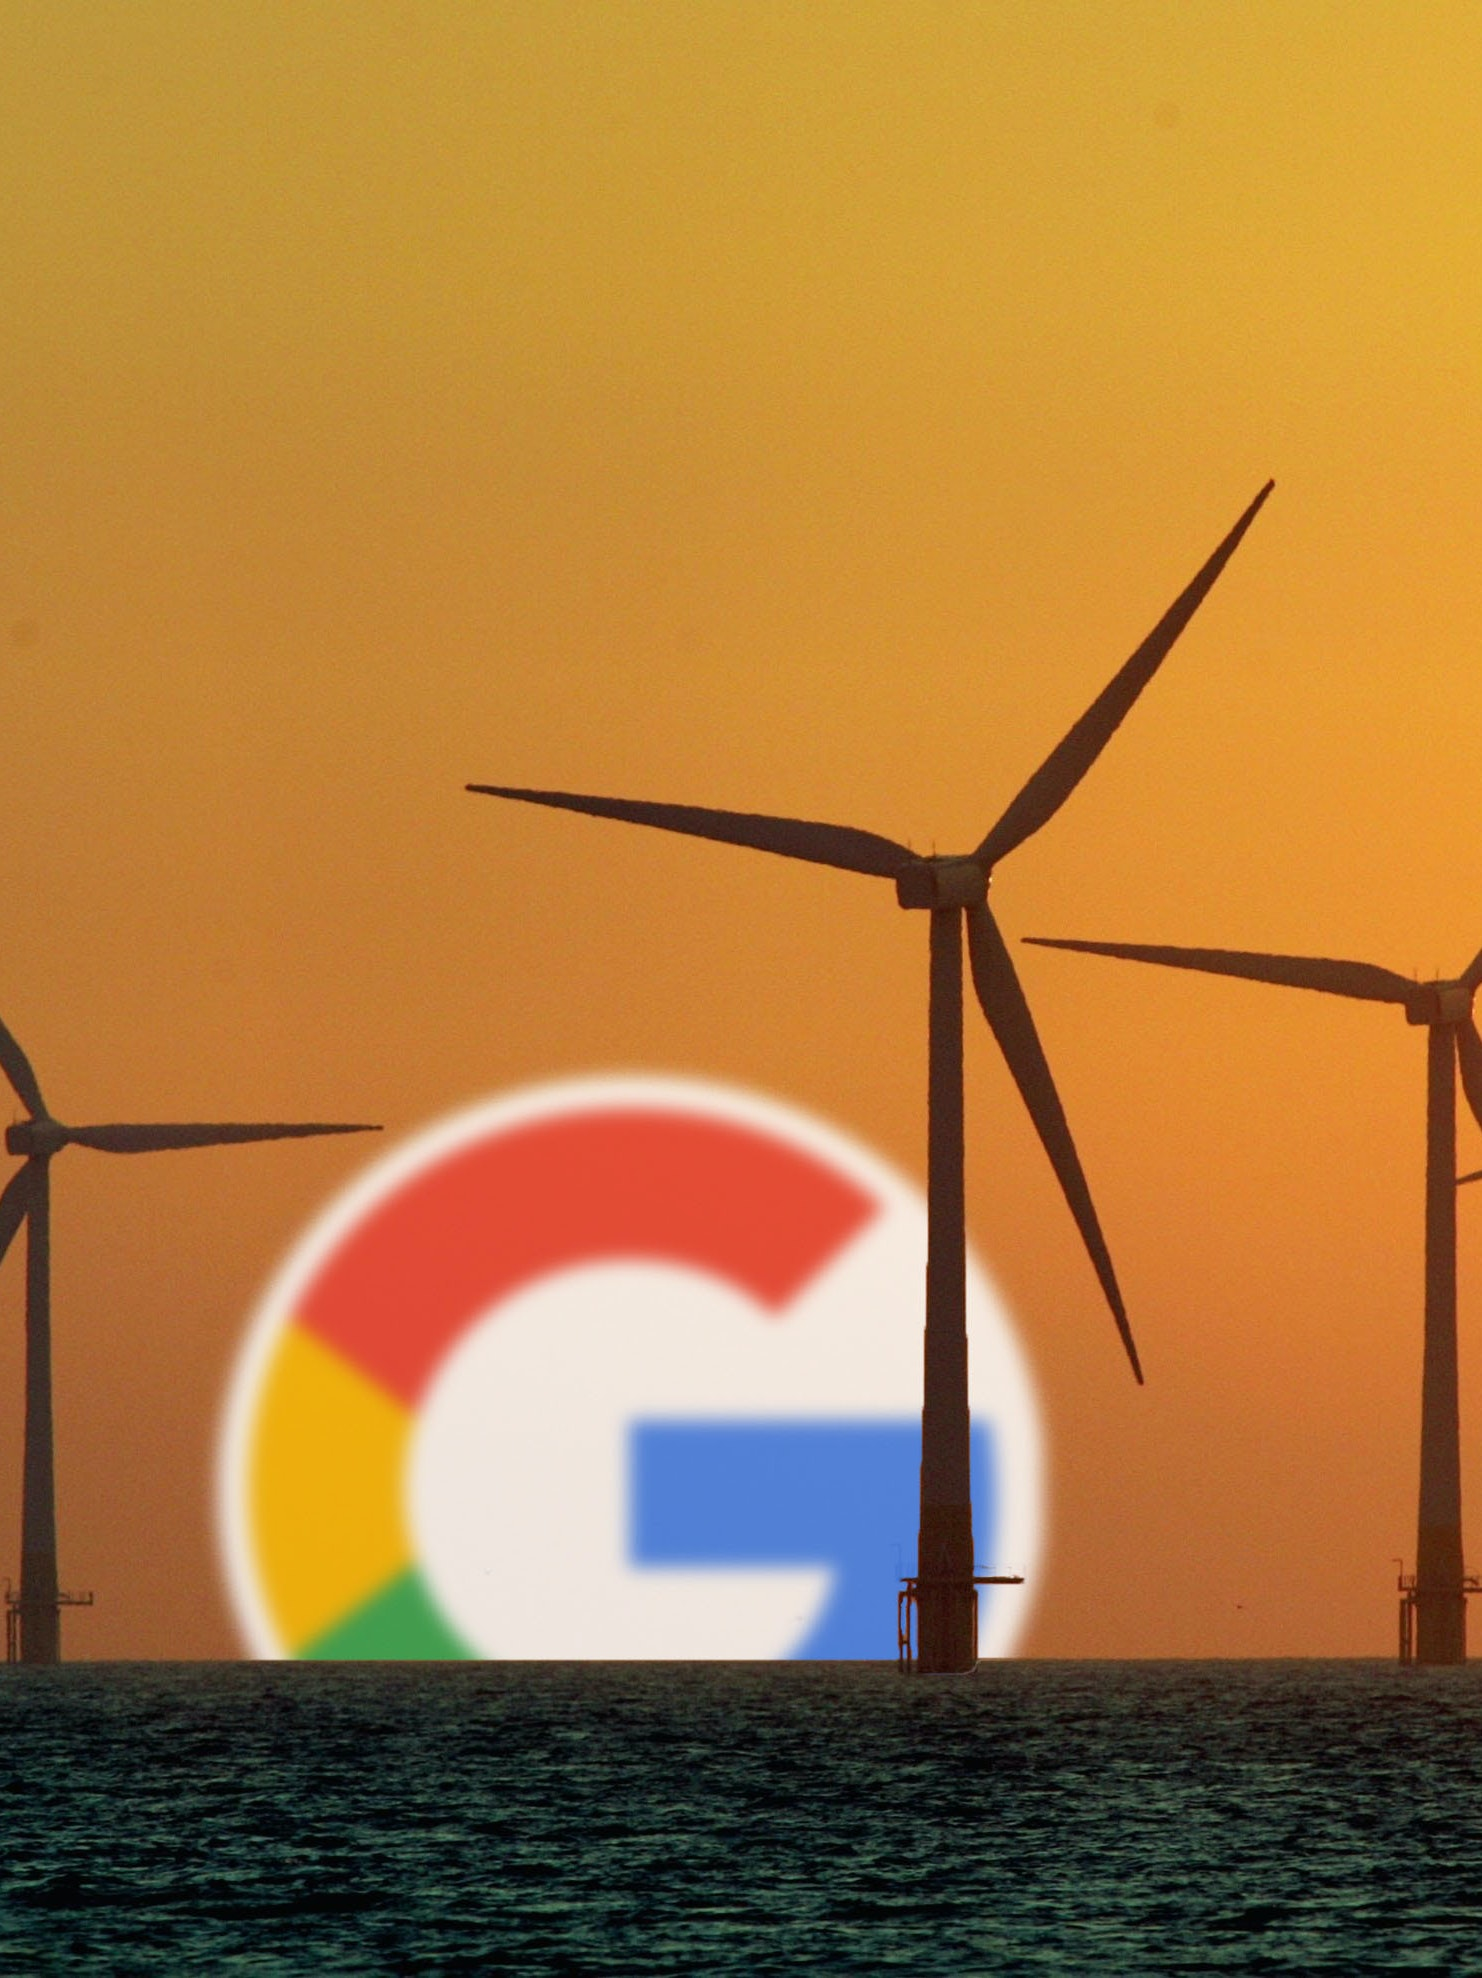 Google says it will run 100 percent on renewable energy starting in 2017.